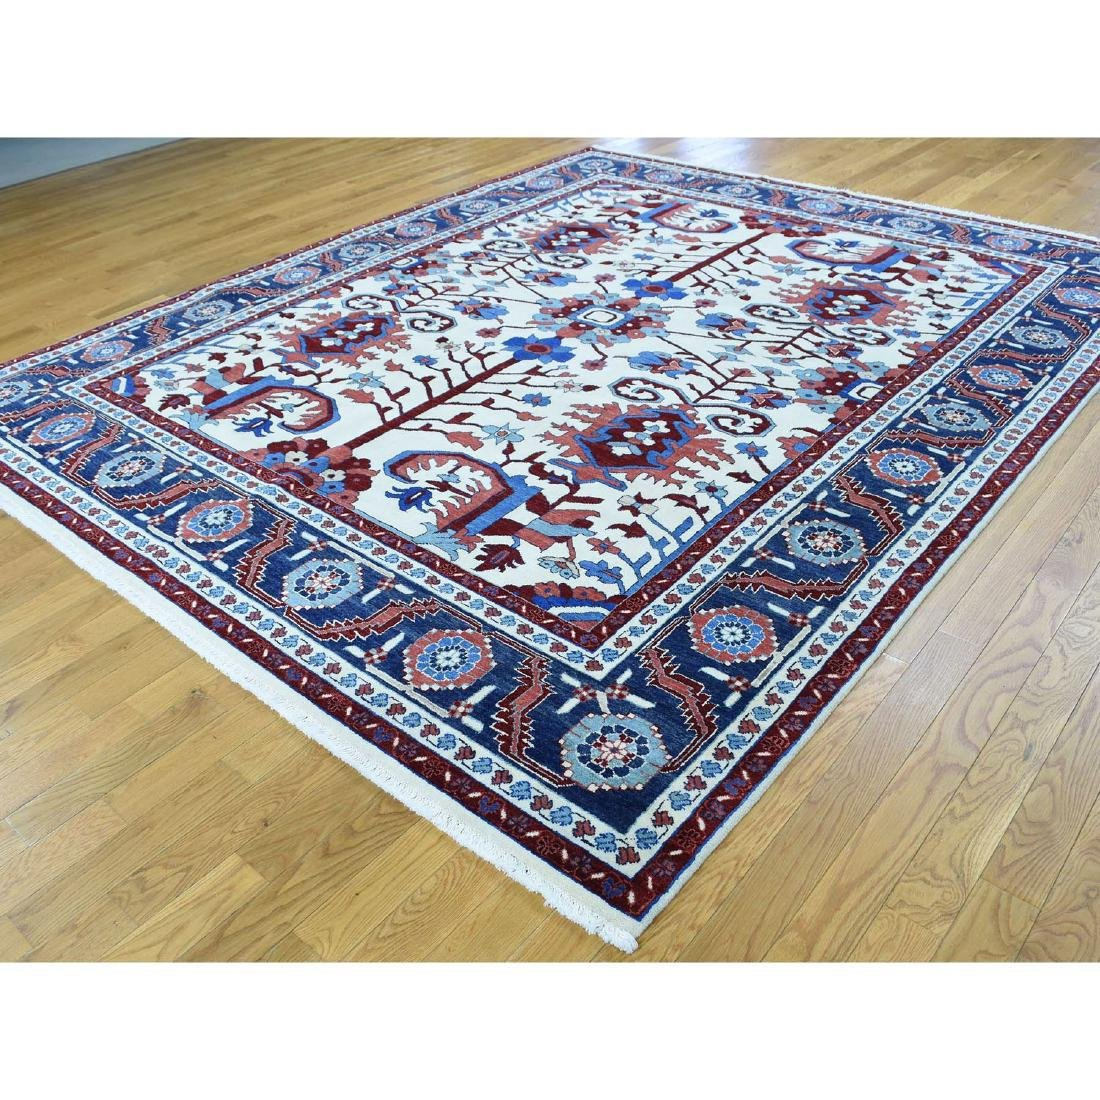 Thick Heriz Hand Knotted Pure Wool Rug 8.4x10.1 - 3